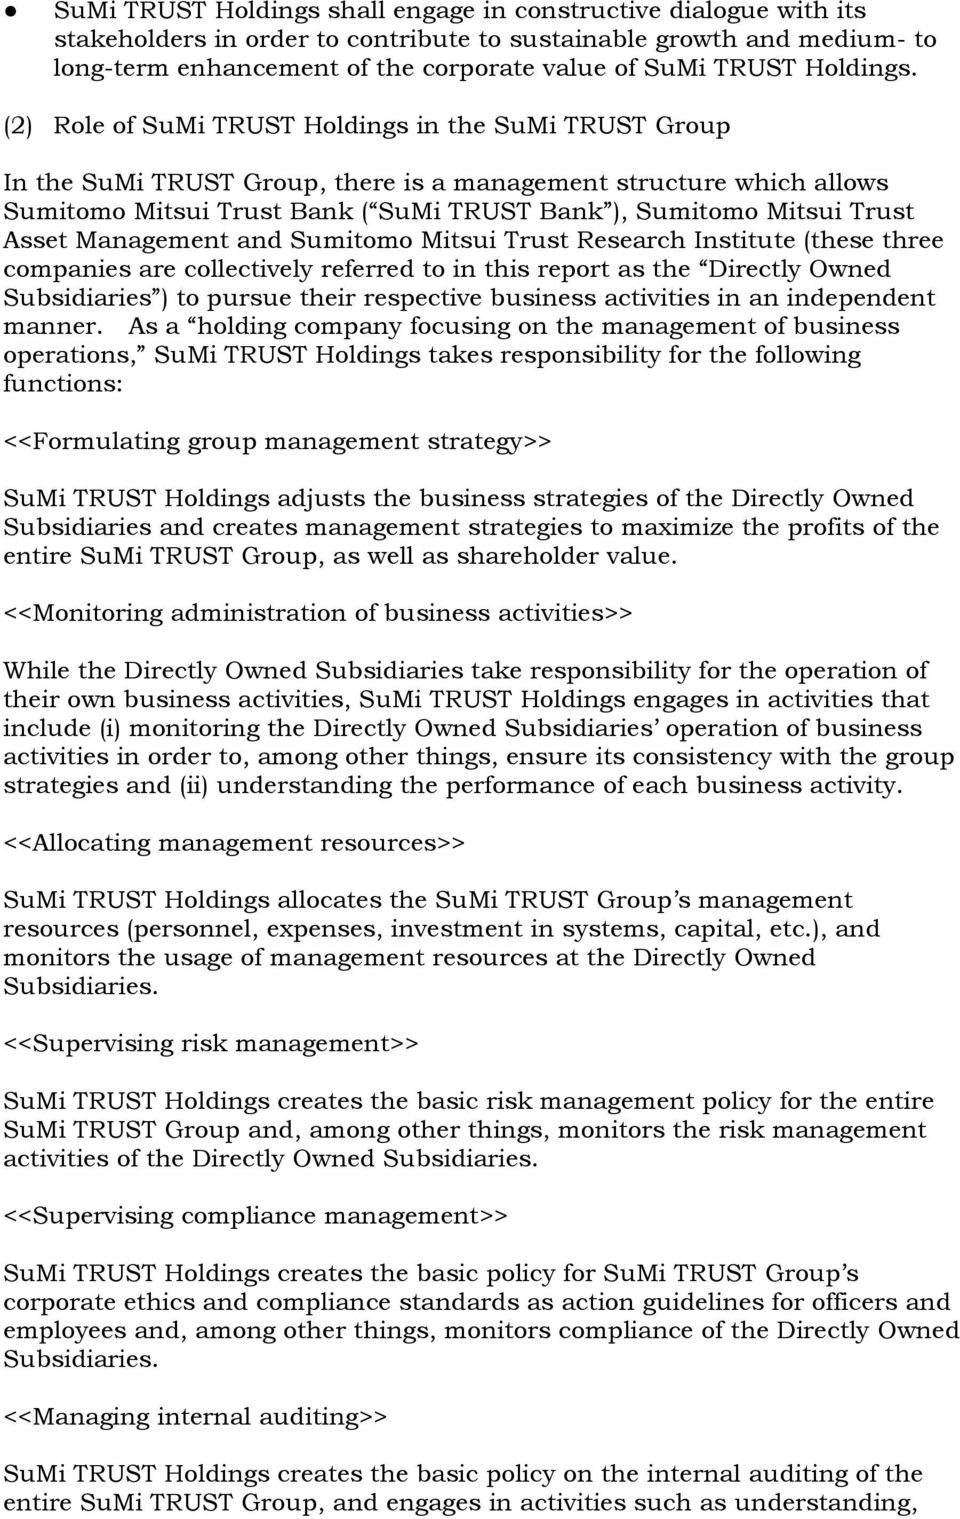 (2) Role of SuMi TRUST Holdings in the SuMi TRUST Group In the SuMi TRUST Group, there is a management structure which allows Sumitomo Mitsui Trust Bank ( SuMi TRUST Bank ), Sumitomo Mitsui Trust